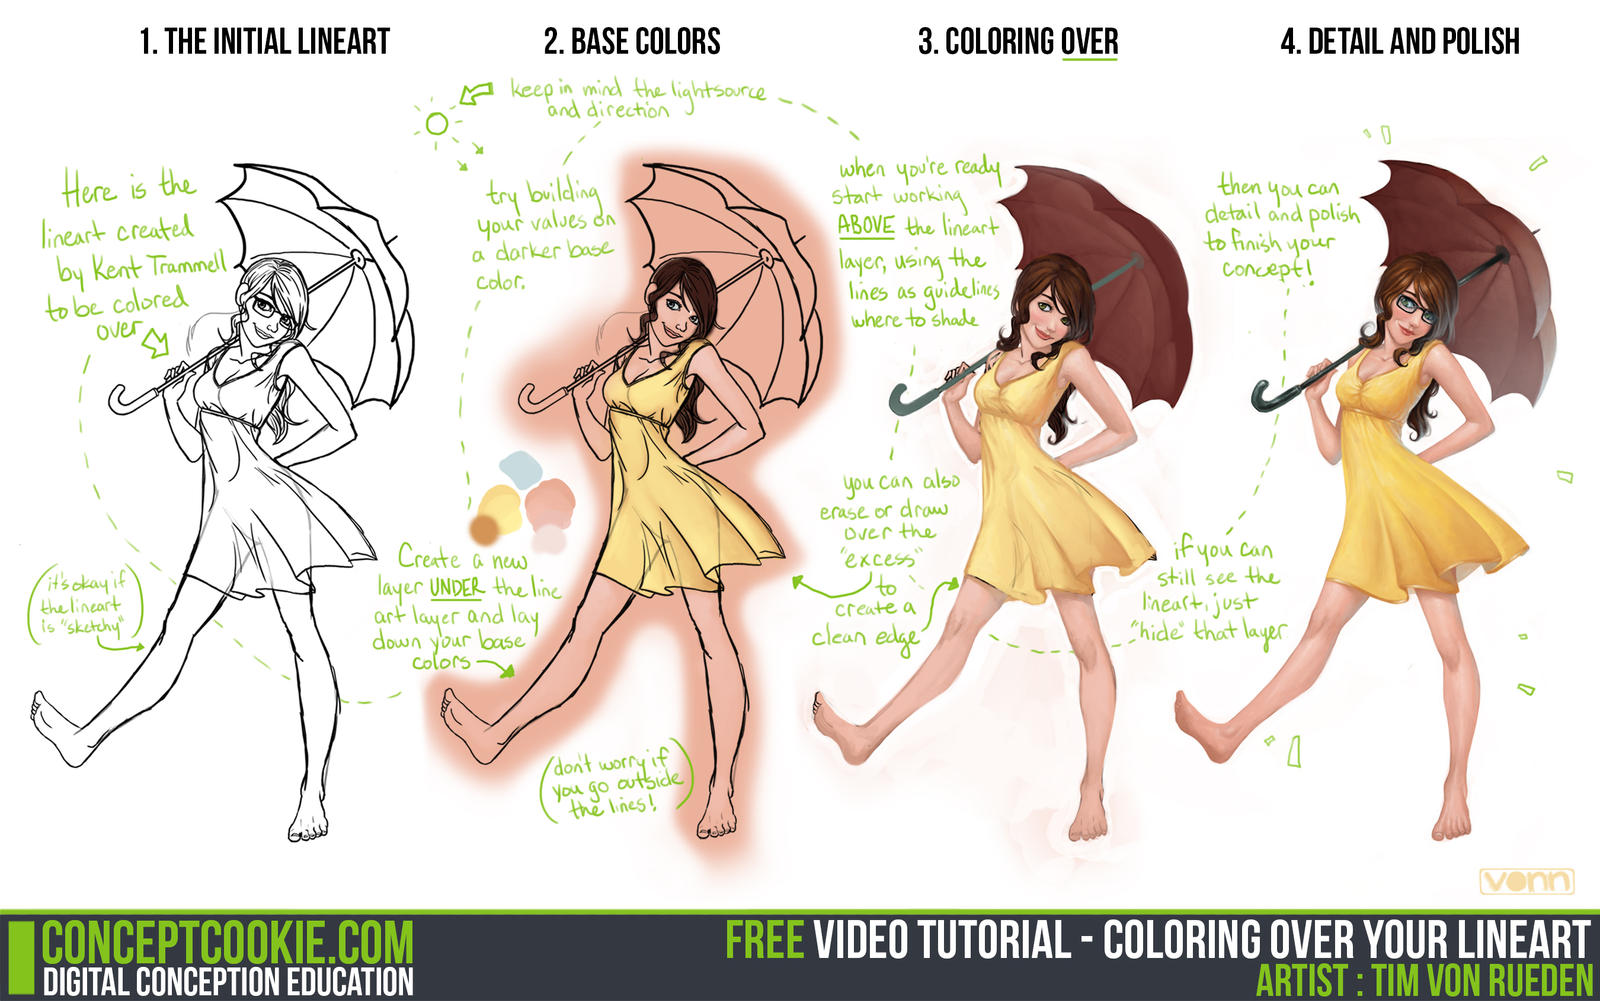 How to color your art in photoshop - Kyoukaraa 3 735 93 Tutorial Coloring Over Your Lineart By Cgcookie